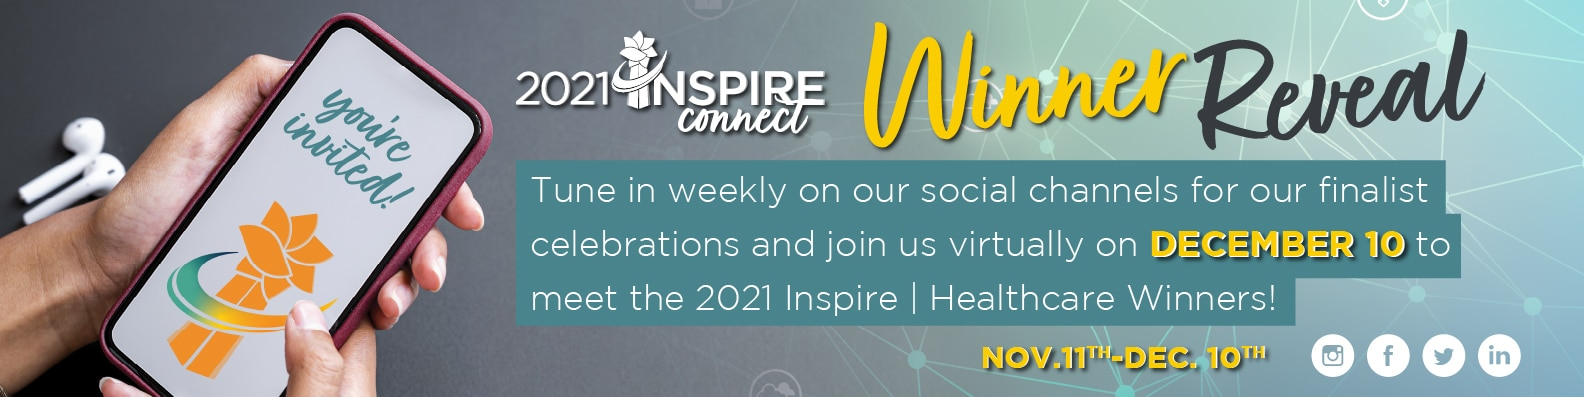 Inspire Connect banner